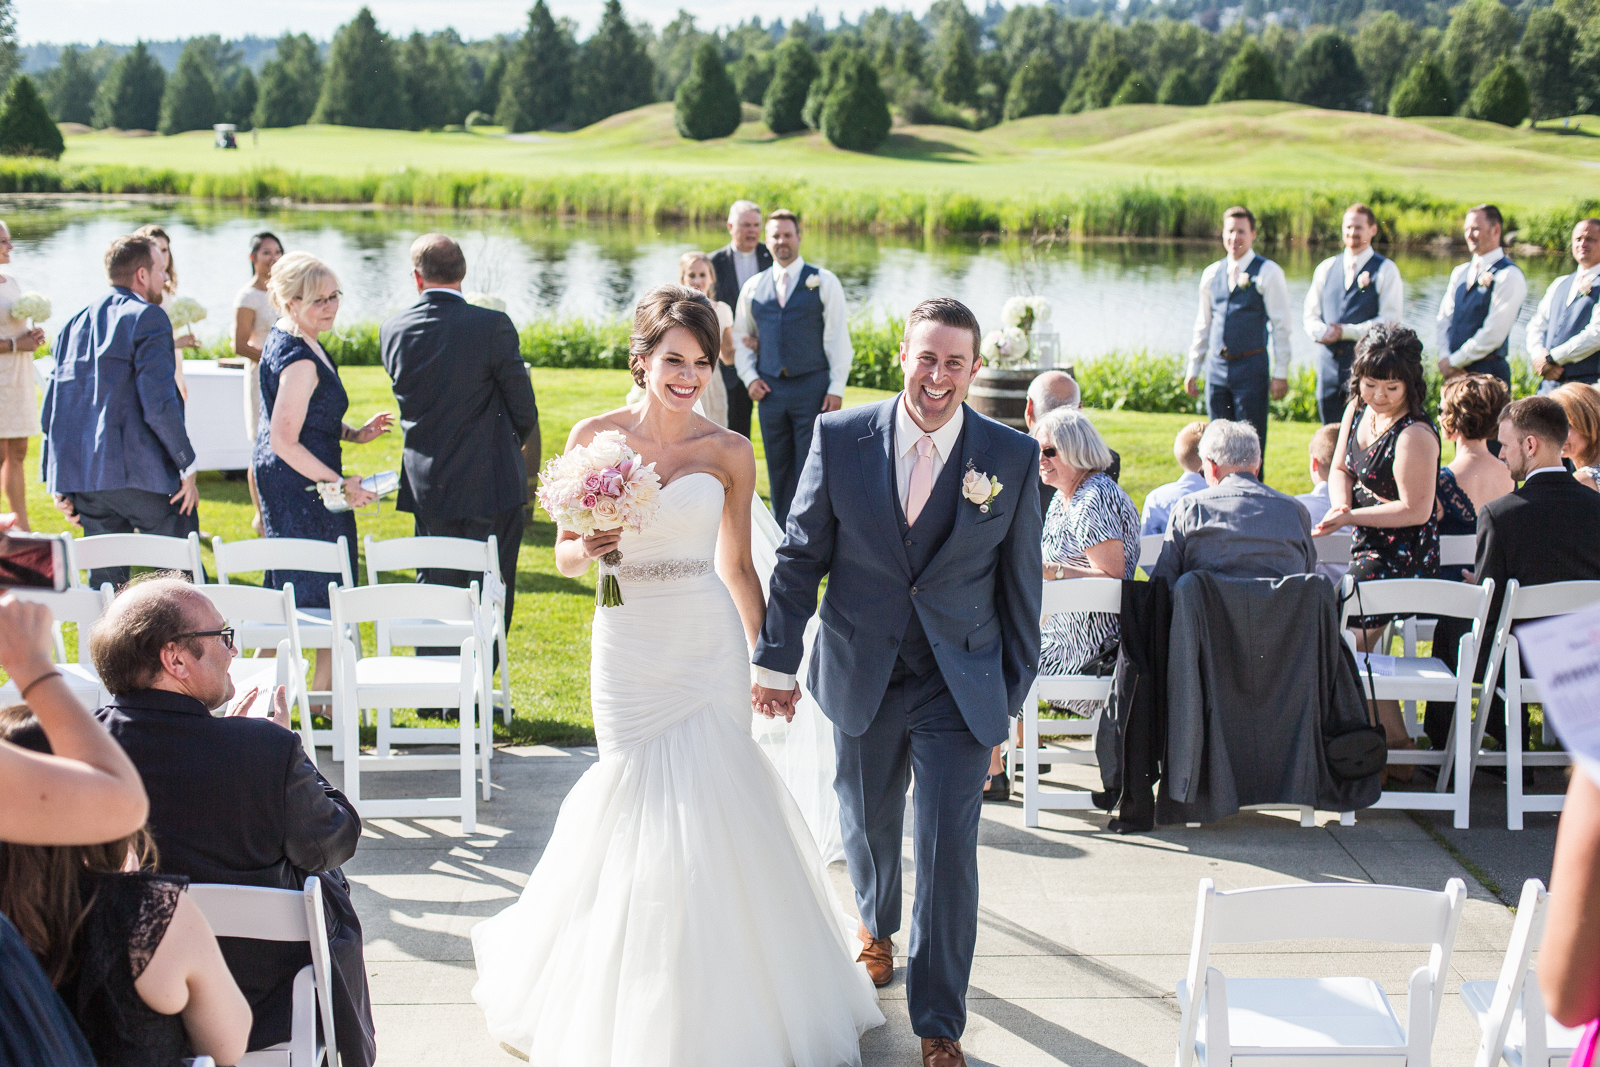 WEDDINGS AT RIVERWAY CLUBHOUSE